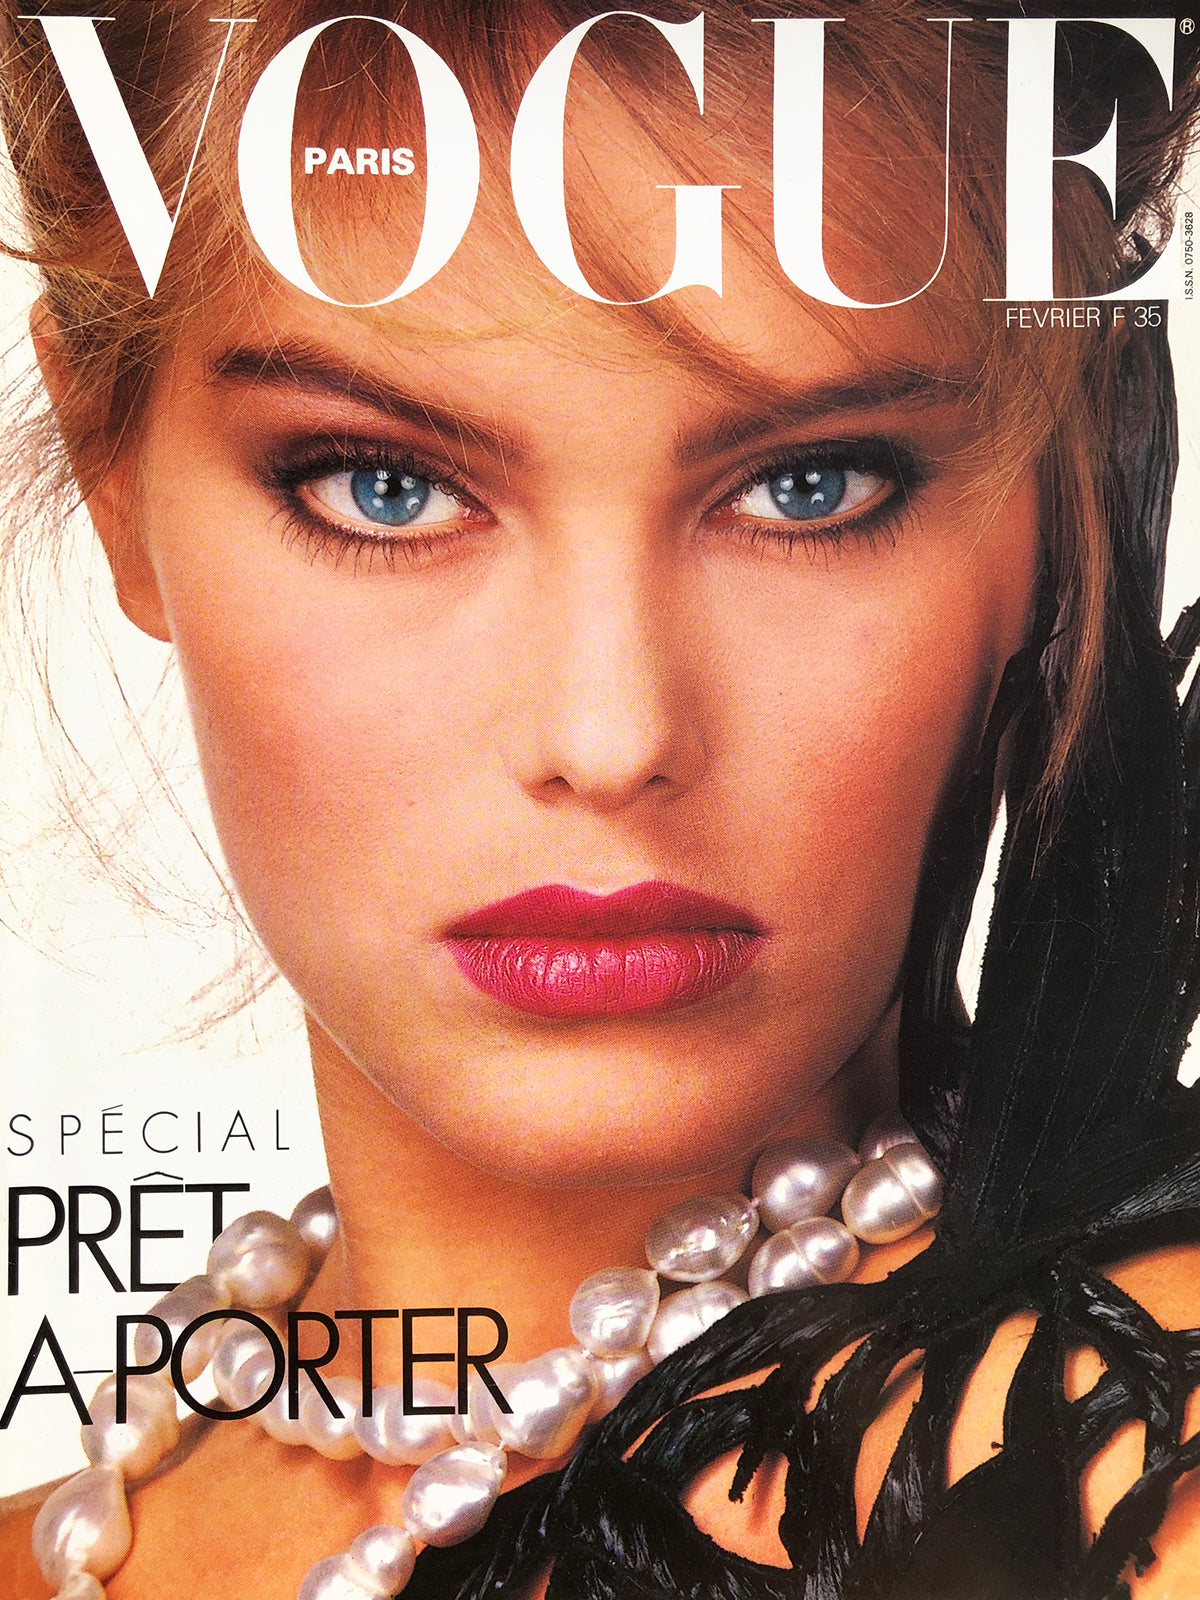 Archived - VOGUE Paris February 1983